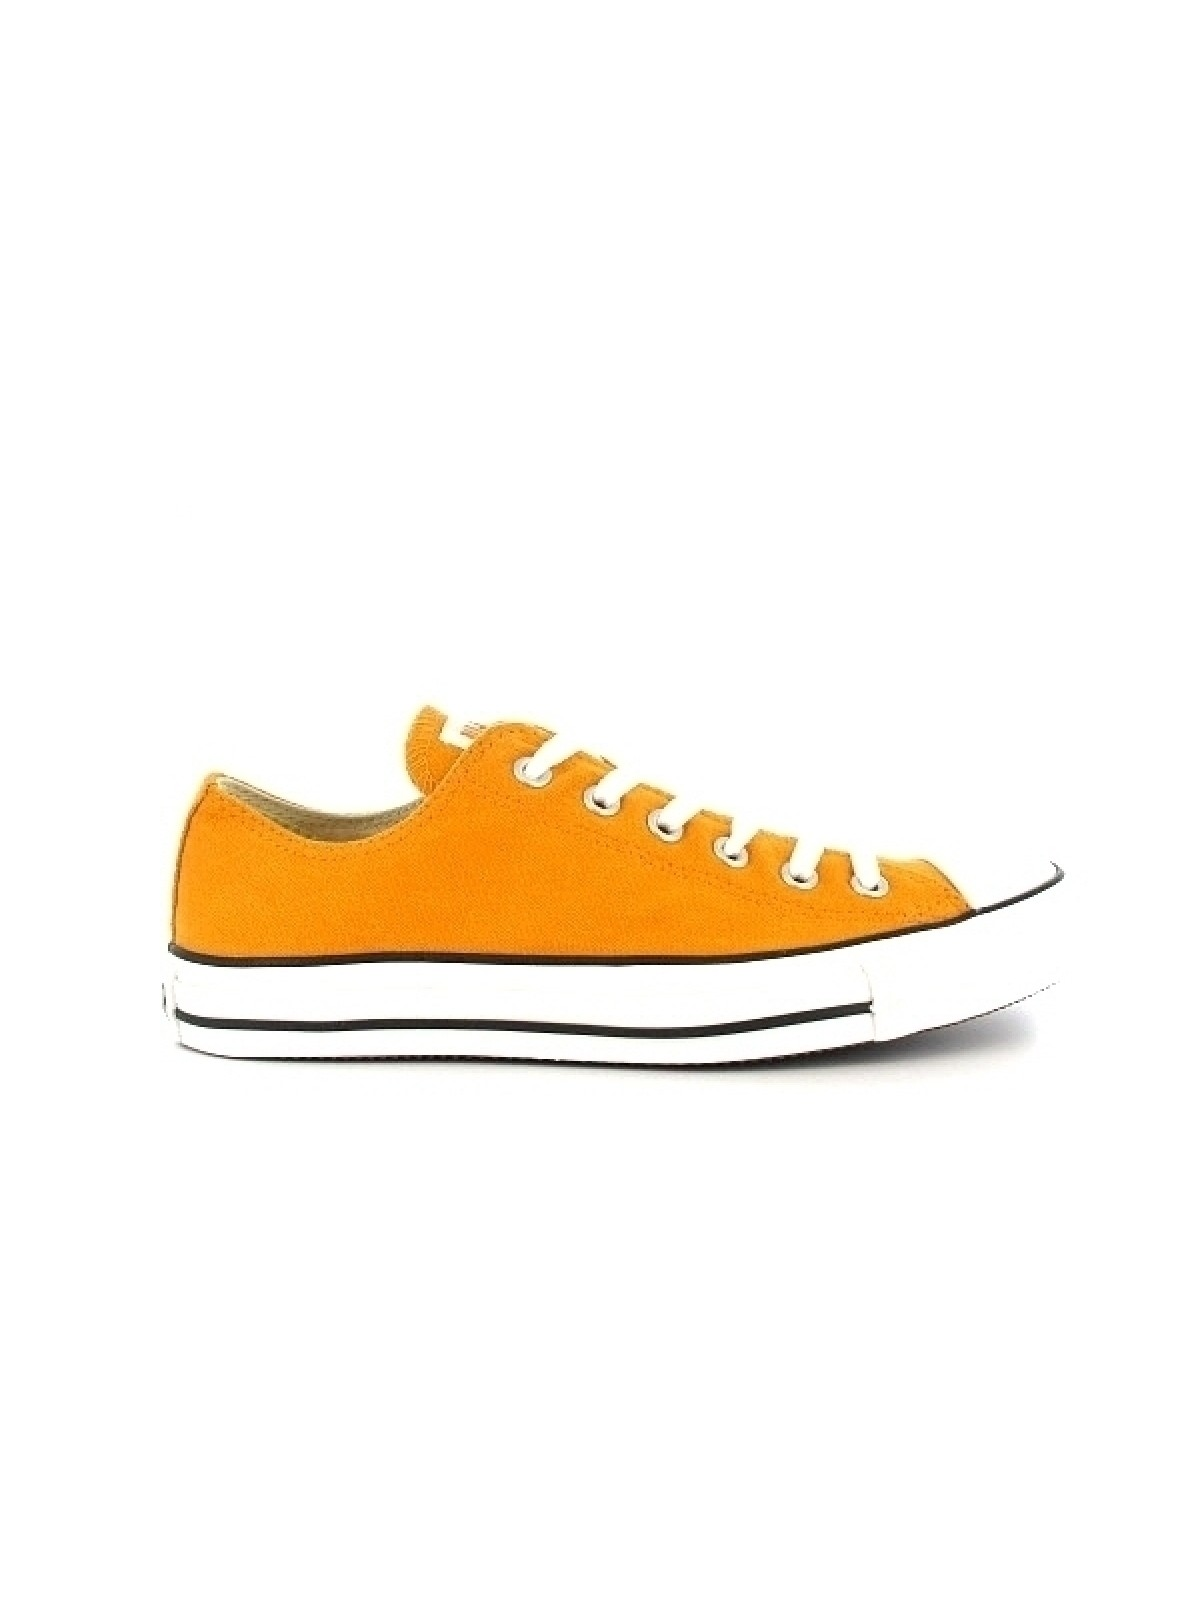 Converse Chuck Taylor all star toile basse cheddar